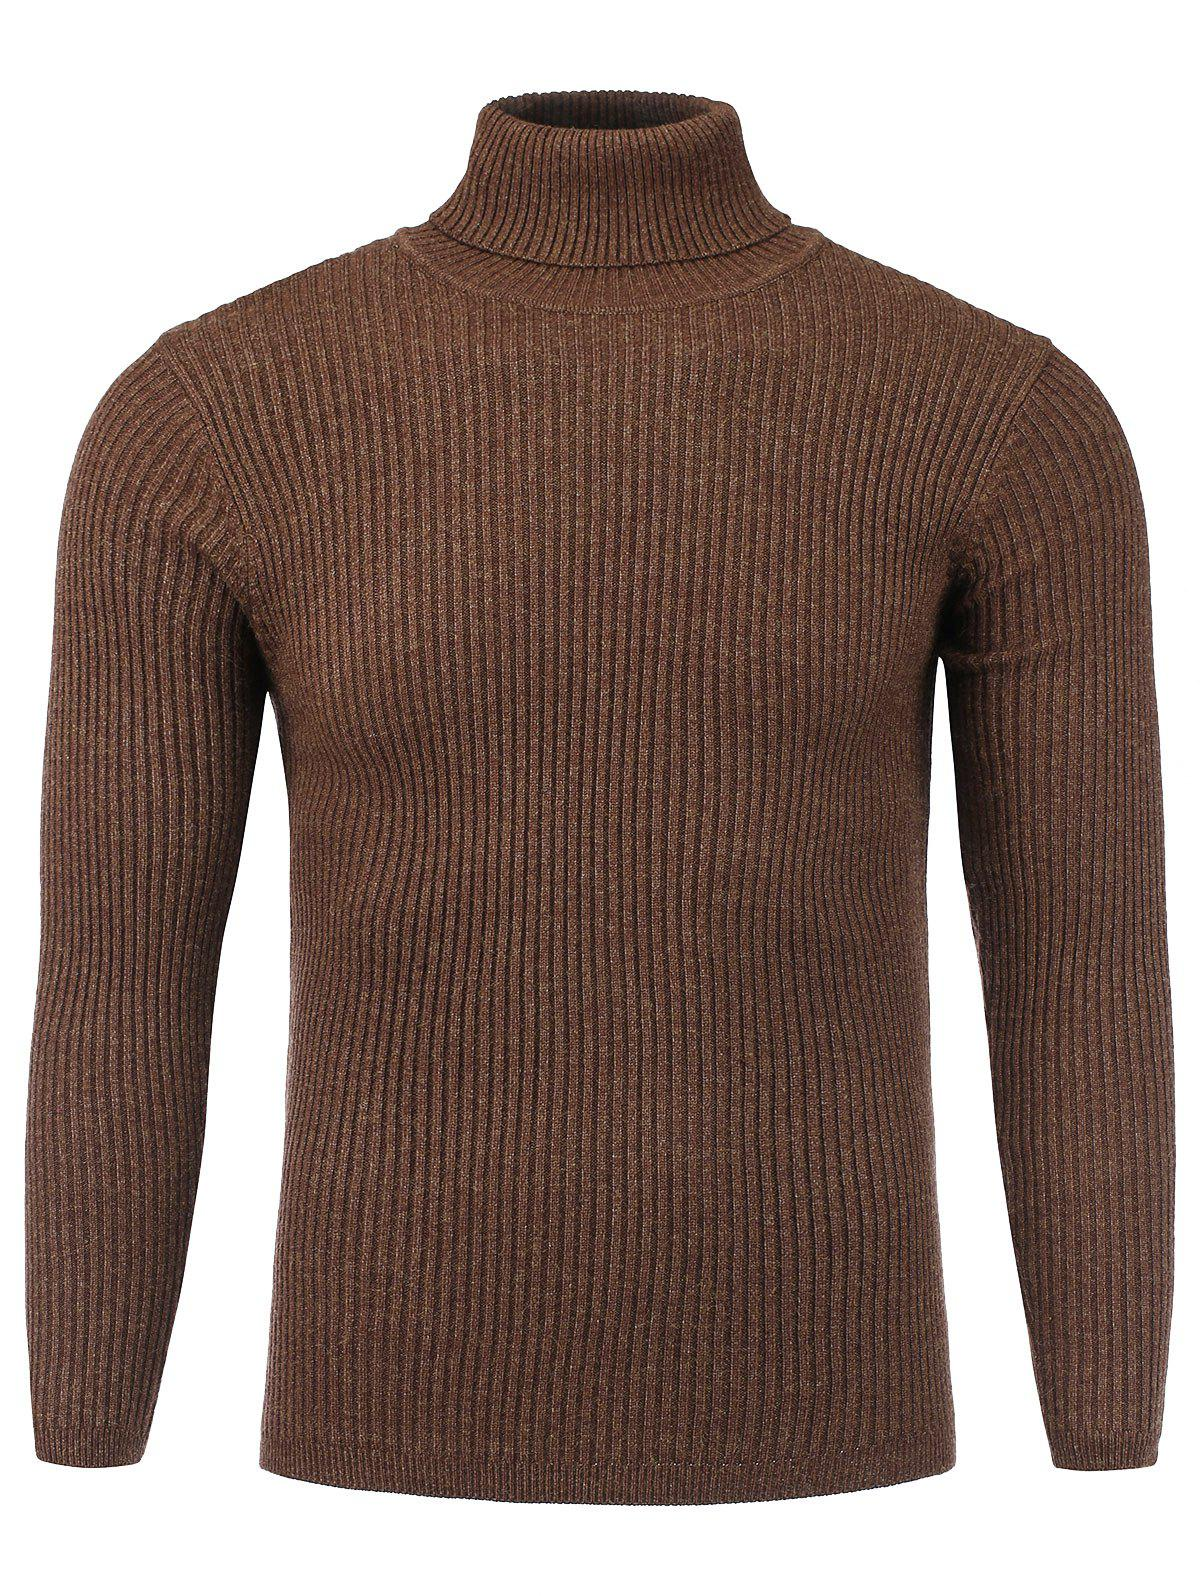 Turtle Neck Stretchy Vertical Knitting Sweater turtle neck vertical knitting stretchy sweater